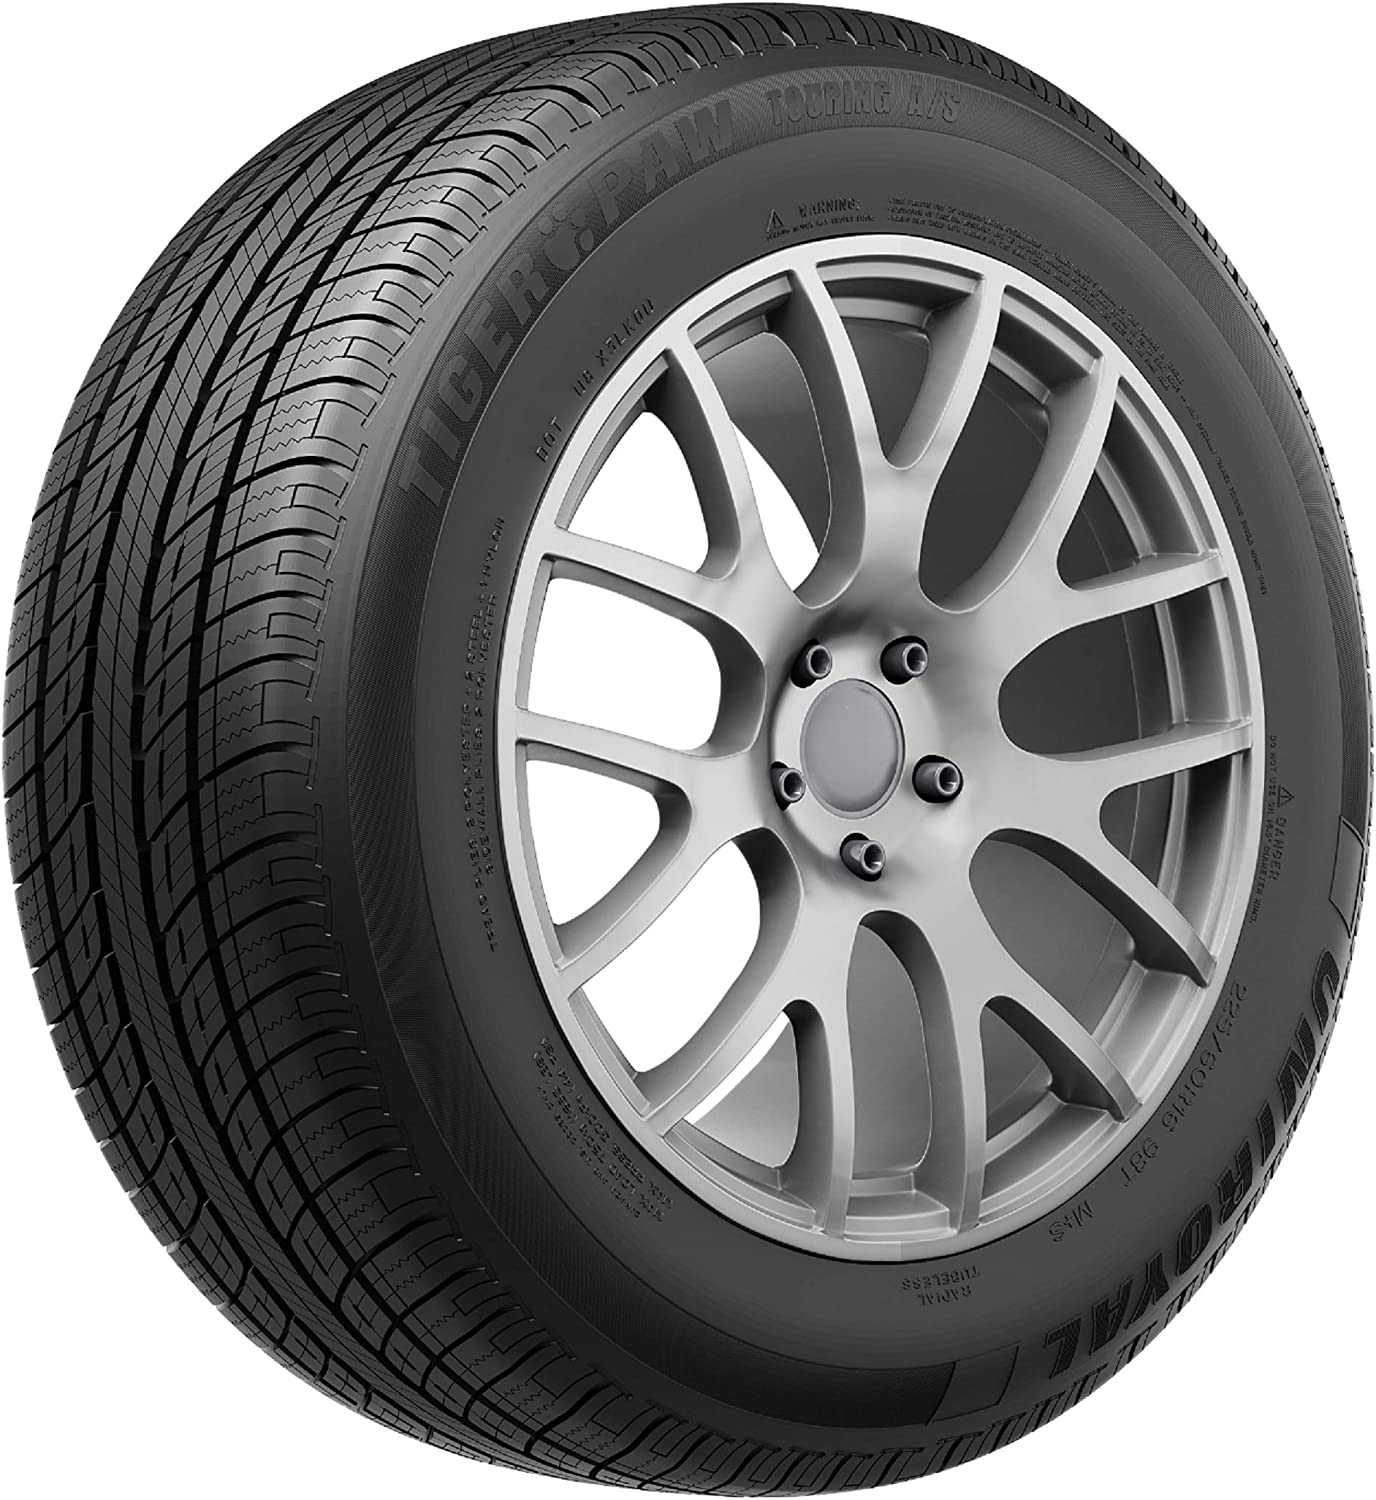 <strong>Uniroyal Tiger Paw Touring A/S All-Season Radial Tire</strong>}